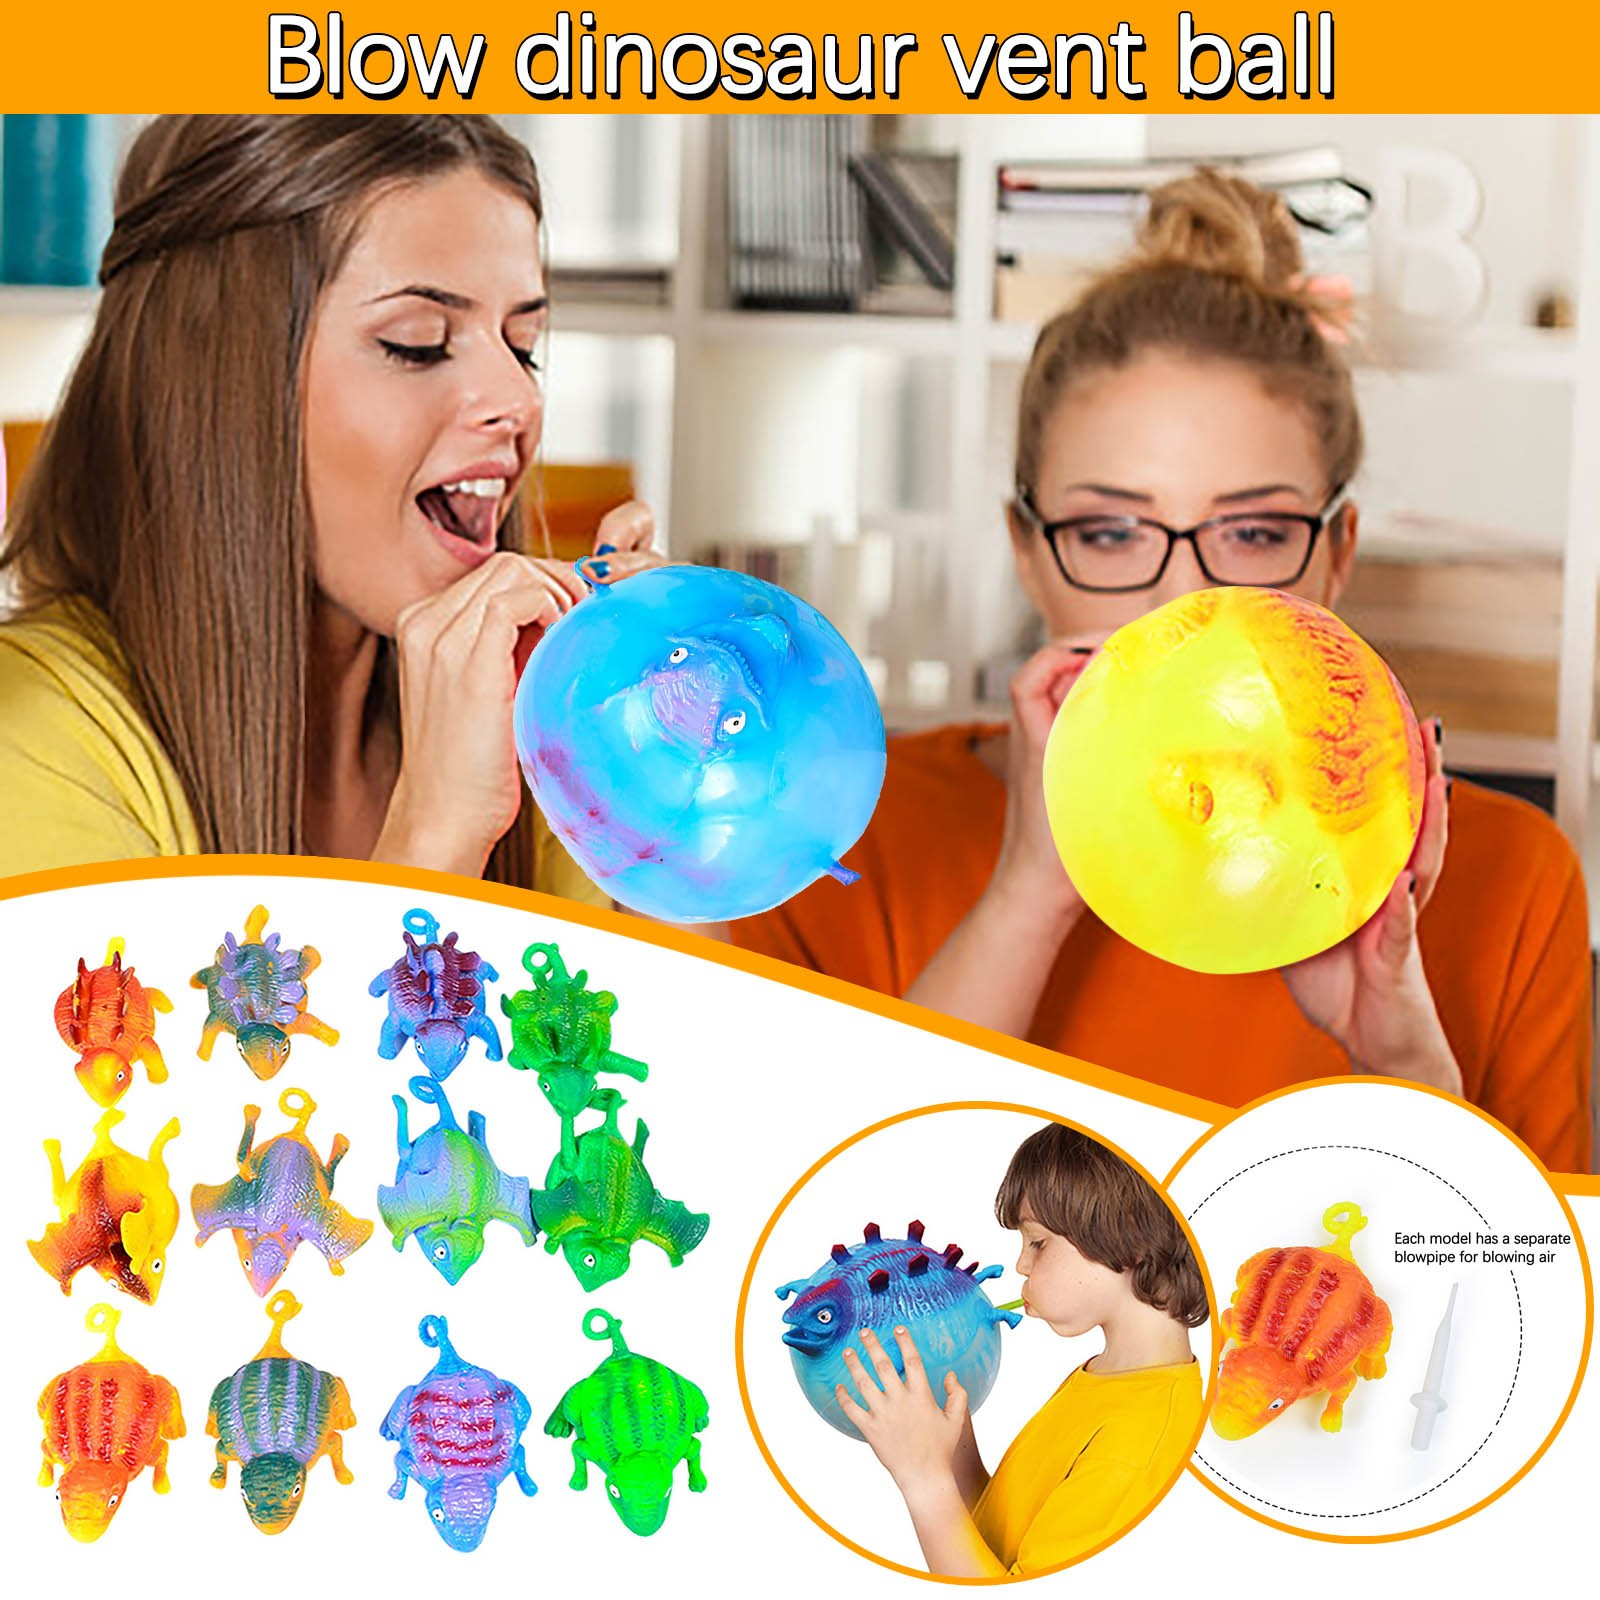 Squeeze Toys 12Pcs Balloon Dinosaurs Kids Funny Blowing Inflatable Animals Dinosaur Stress Relief Balloons Ball Novelty Toys enlarge